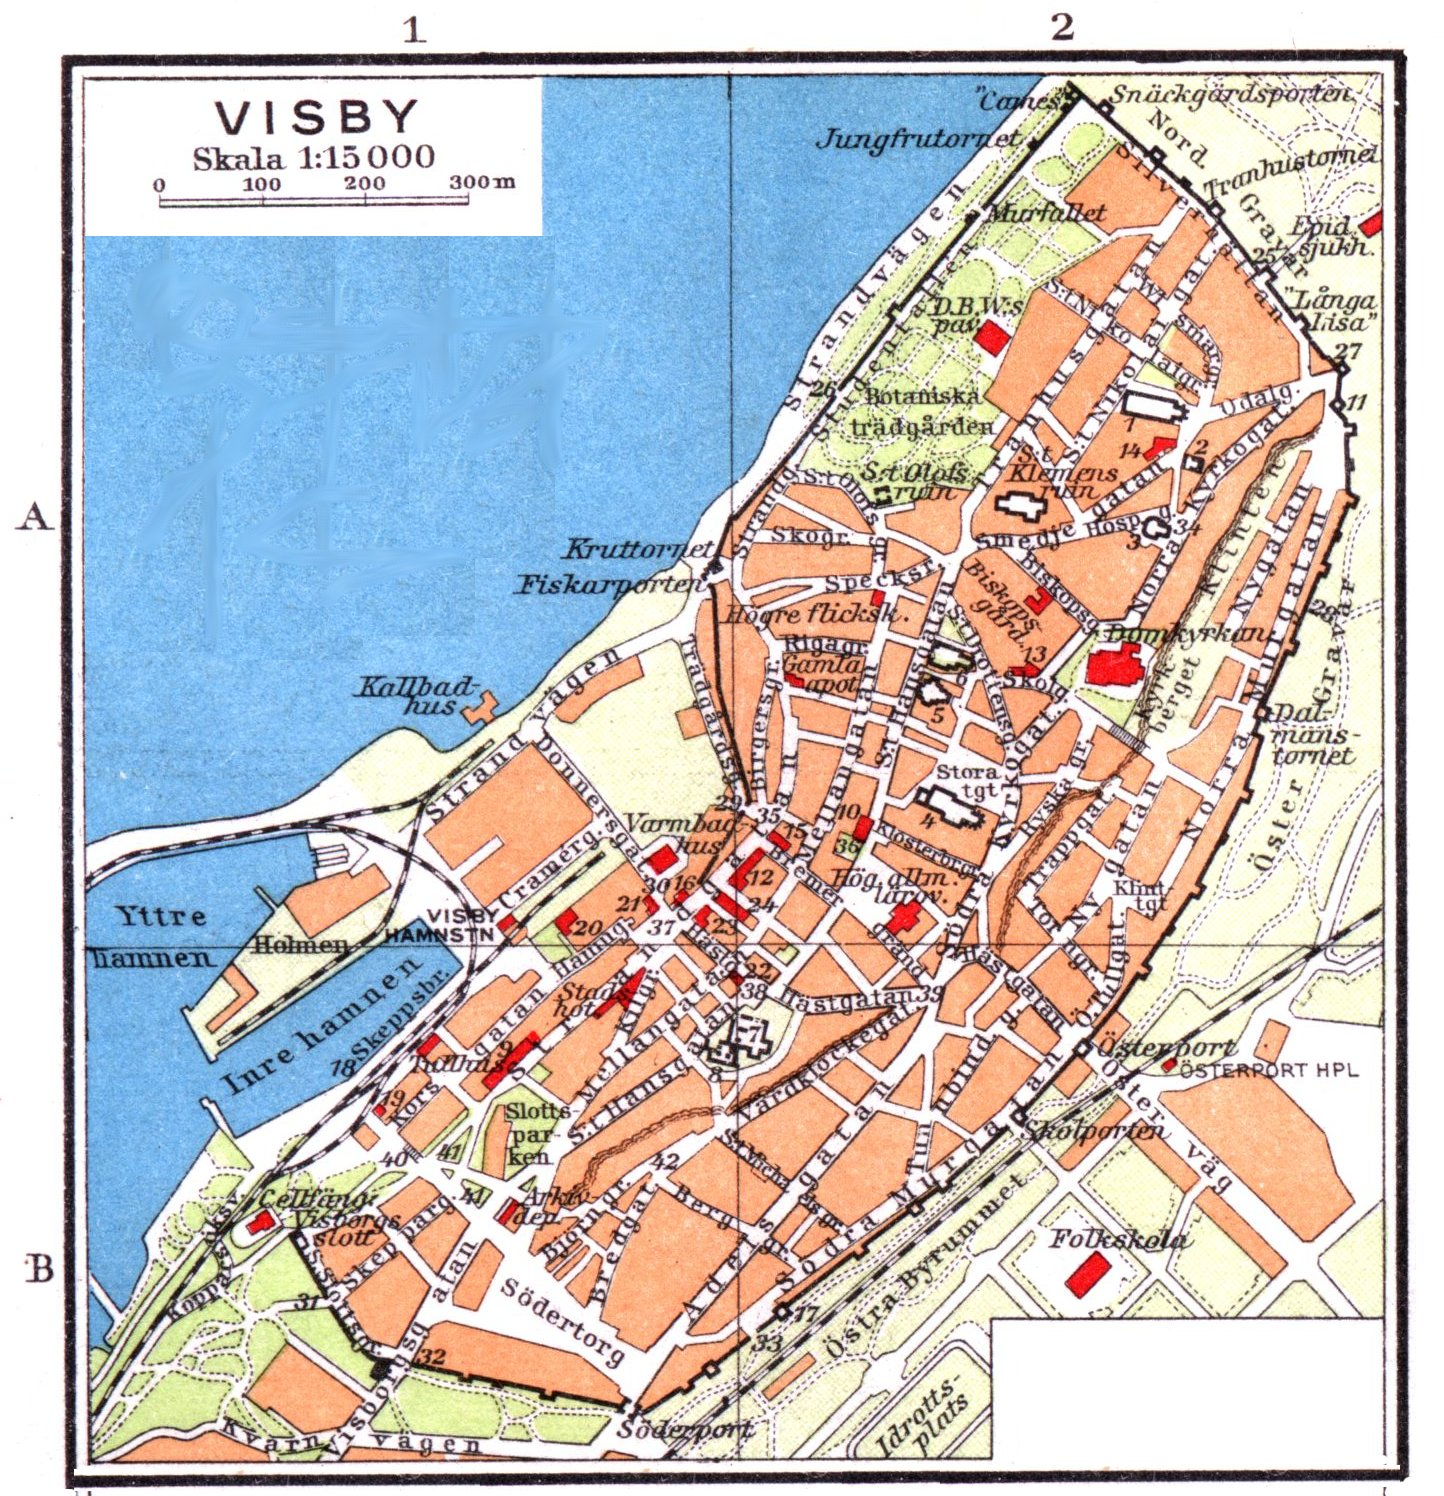 karta visby File:Cohrs Visby 1928.   Wikimedia Commons karta visby